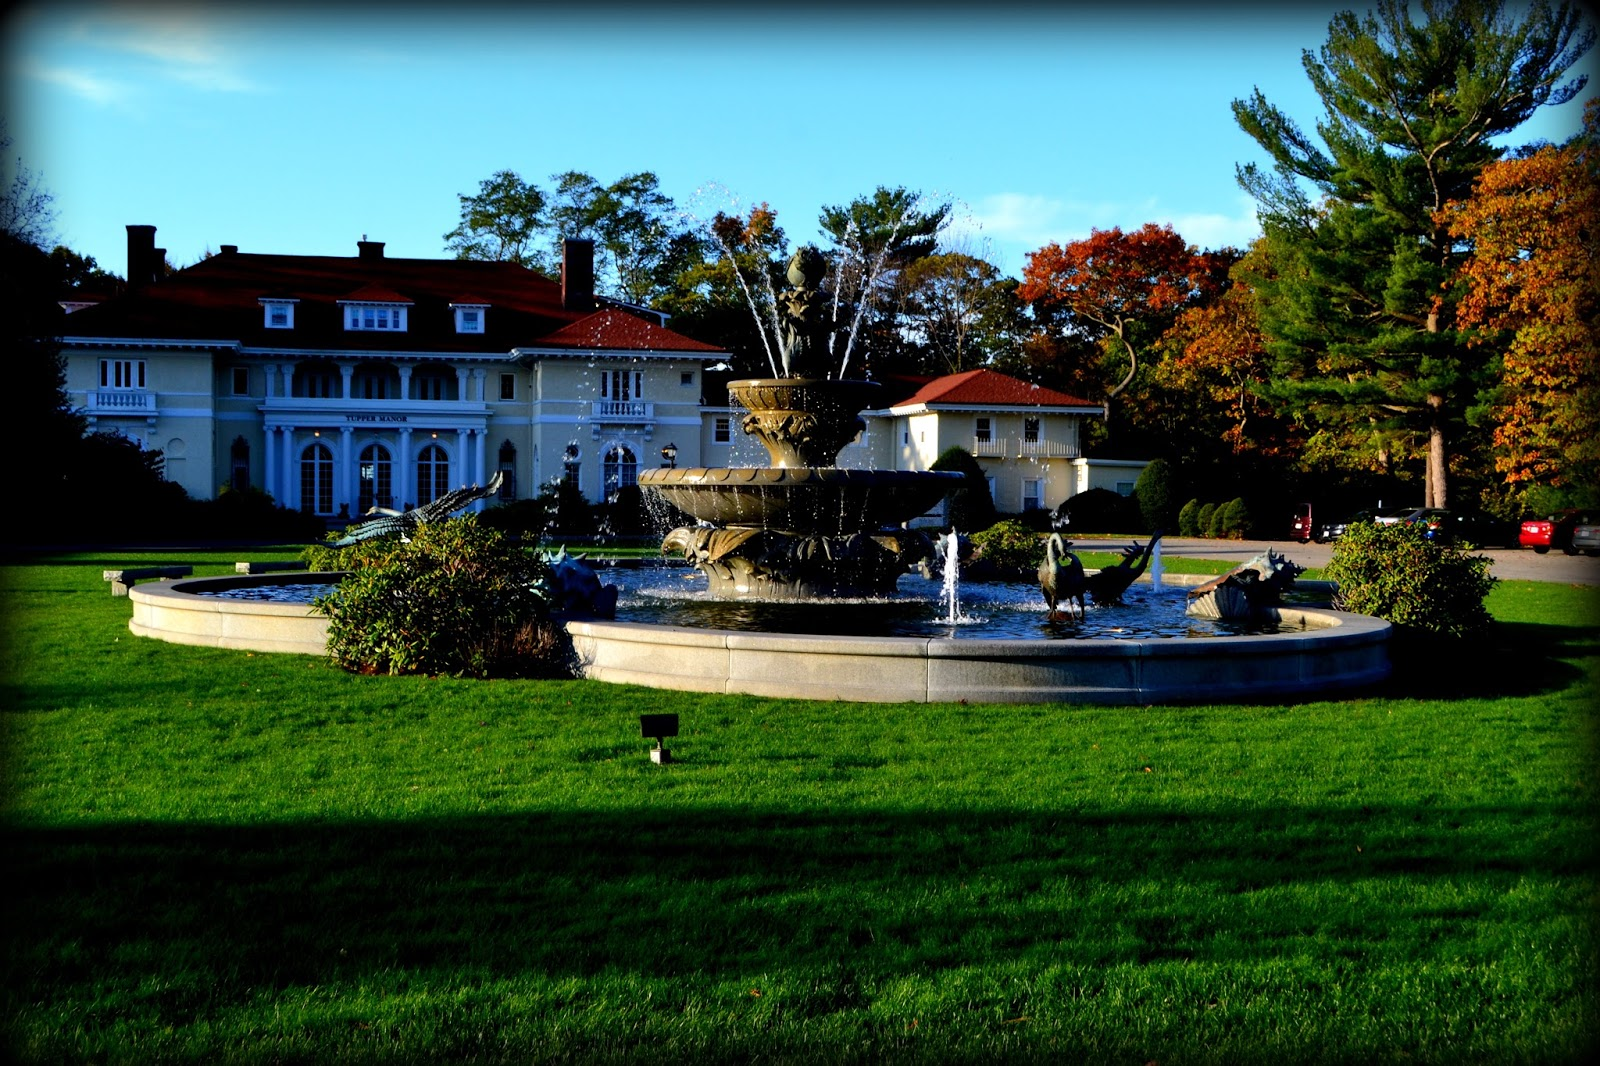 waters edge, fountain, tupper manor, endicott college, shadows, morning